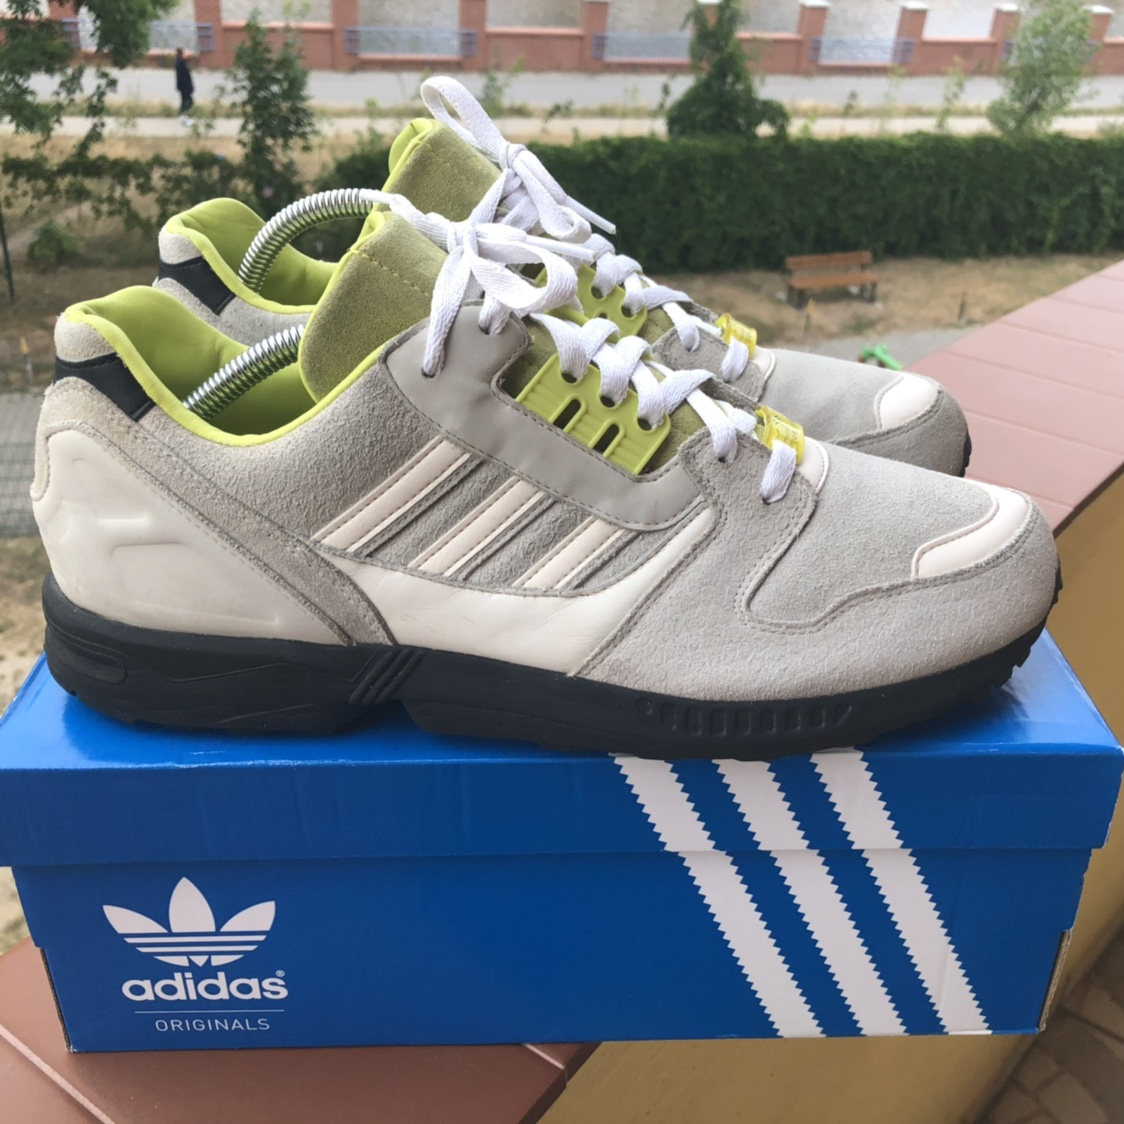 size 40 6065d f40e7 Adidas Torsion ZX 8000 From 2010. Good condition and ...